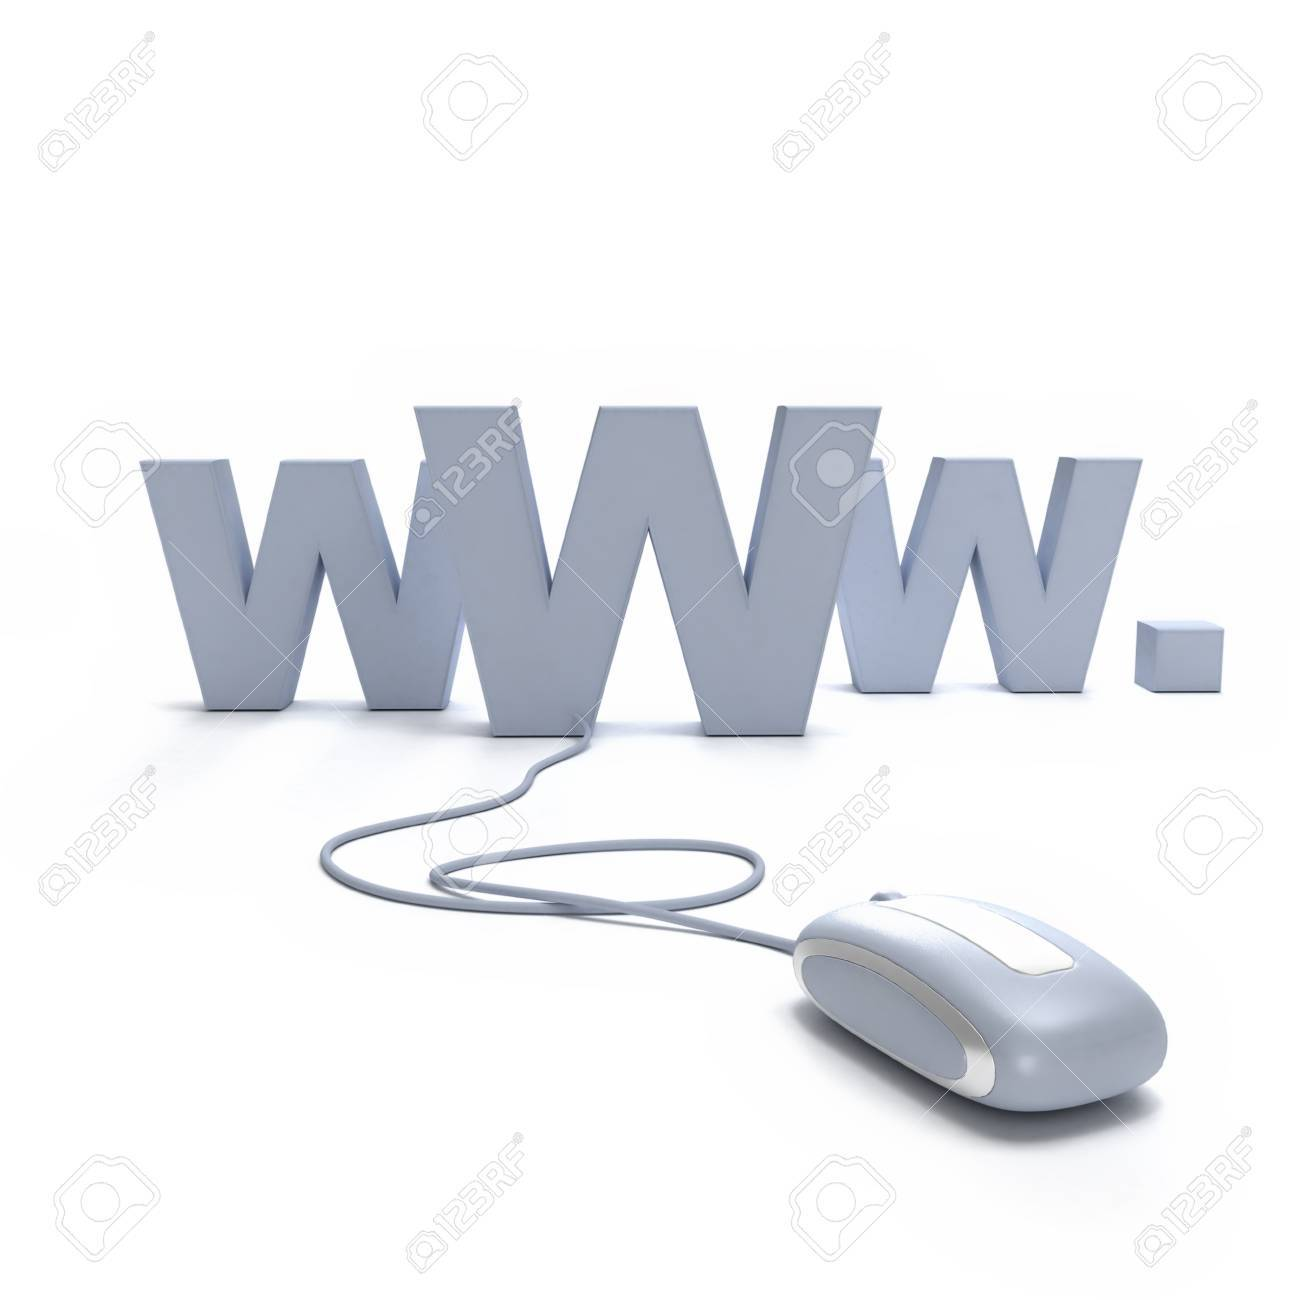 Internet symbol www connected to a mouse Stock Photo - 15552056